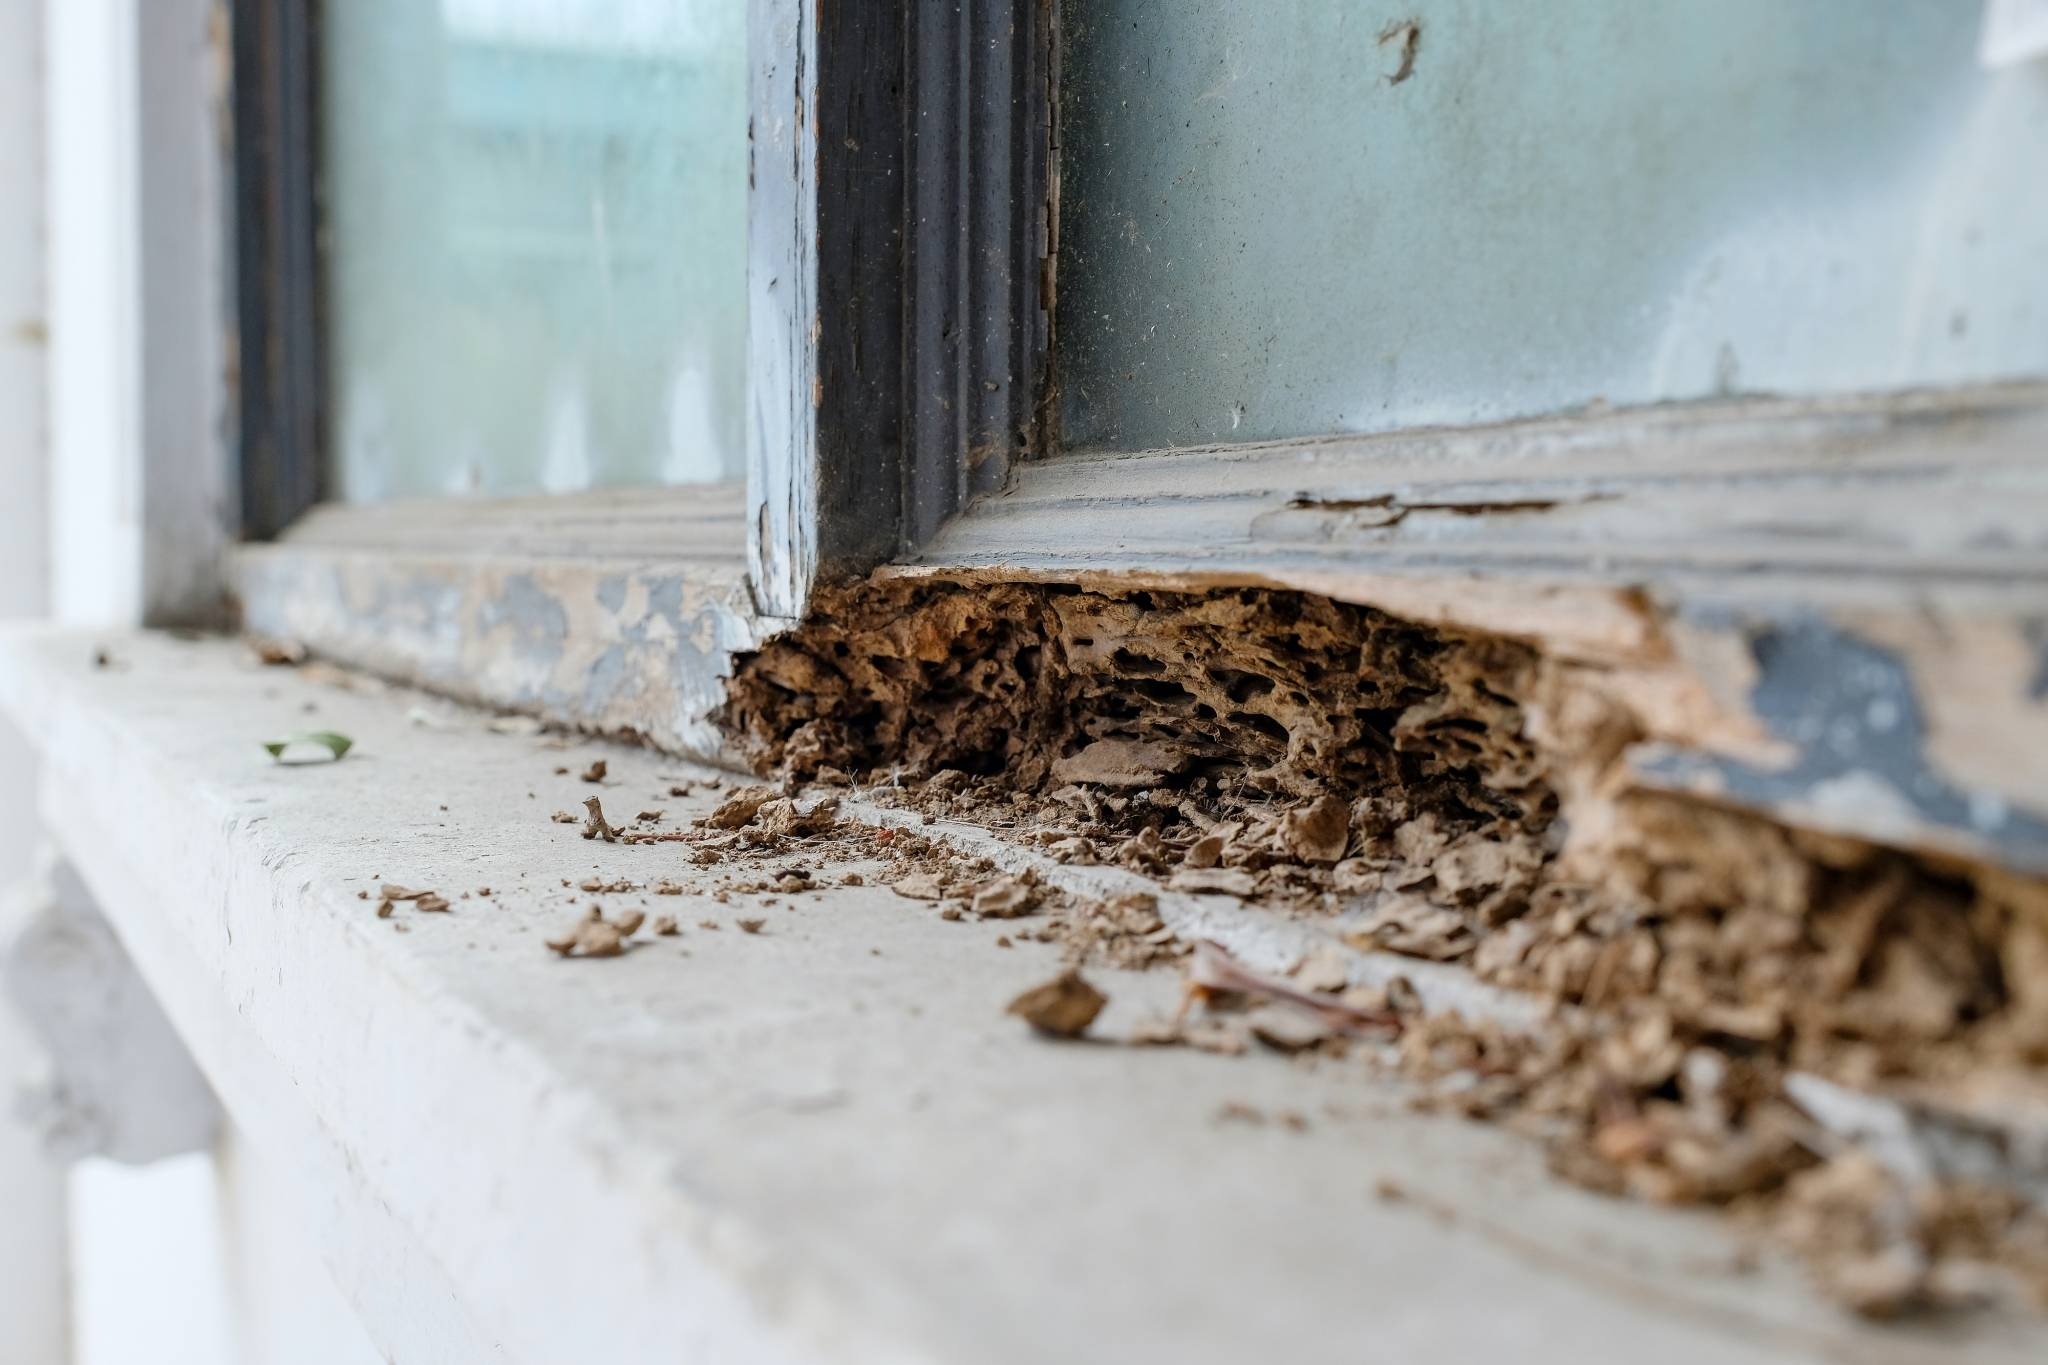 I Found Termites in my Home. What do I do?